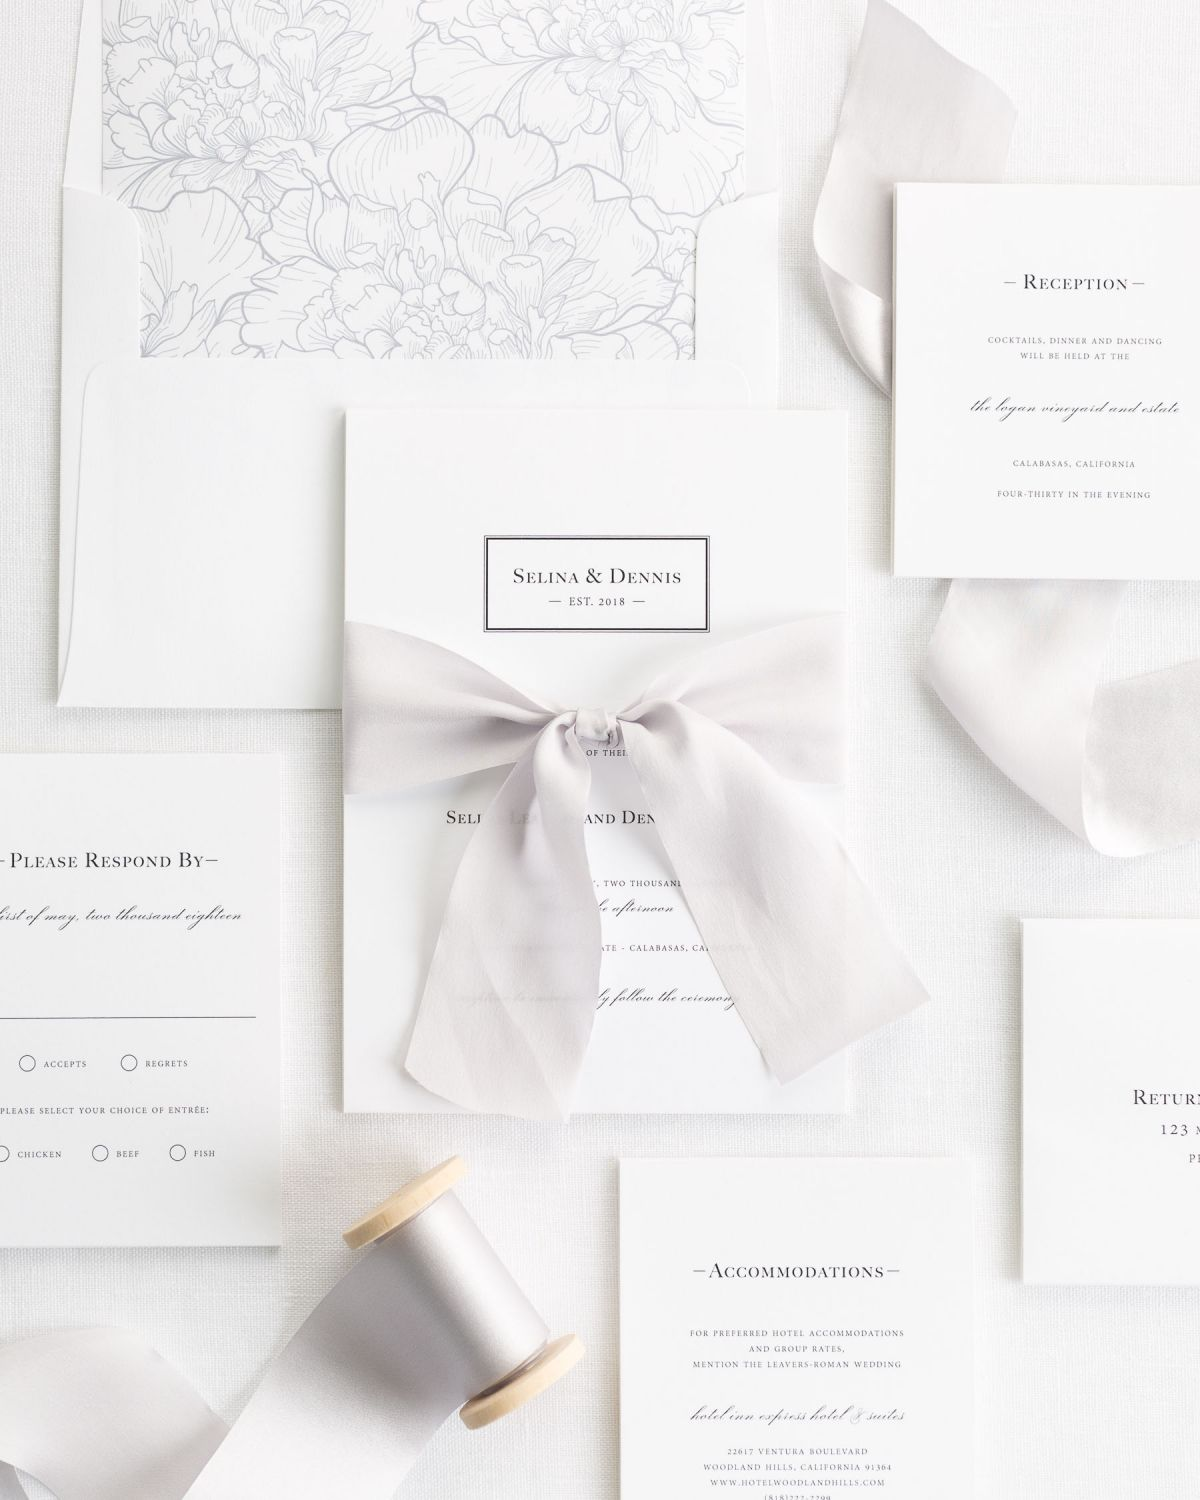 Silver Wedding Invitations with Silk Ribbon and a Floral Envelope Liner